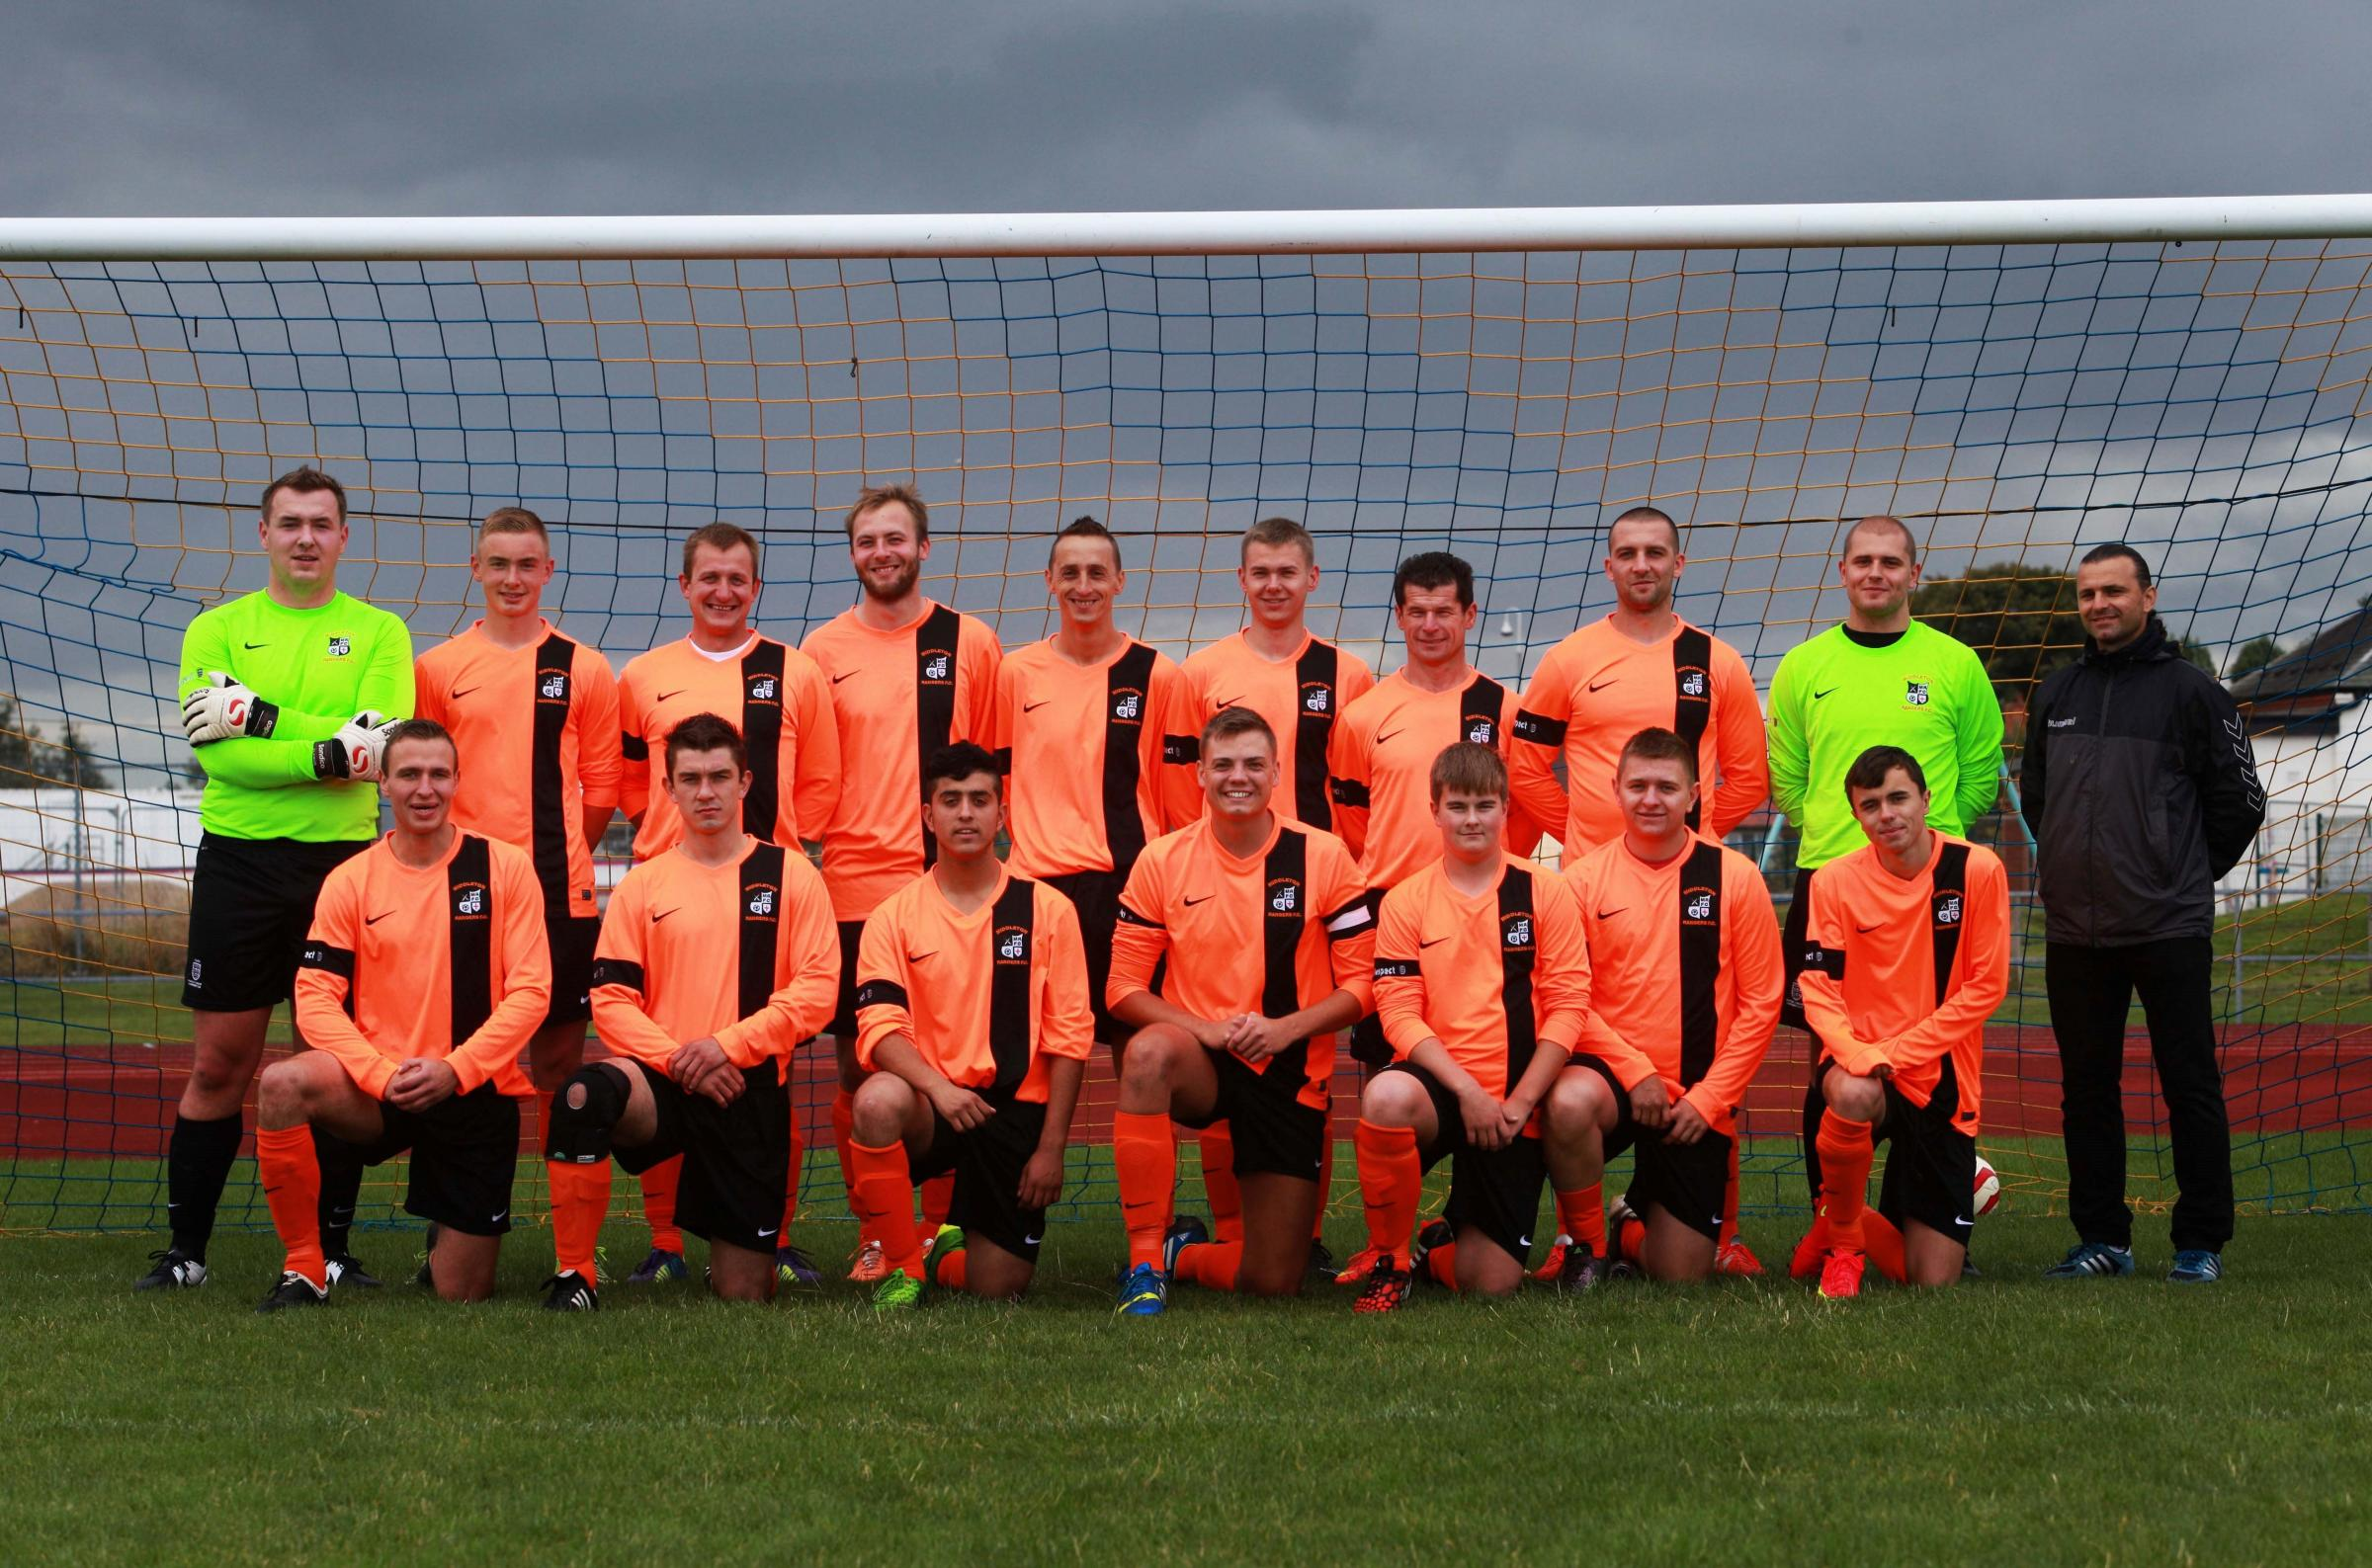 HIGH HOPES: The newly formed Polish football team at Middleton Rangers Football Club, in Darlington  Picture: SARAH CALDECOTT